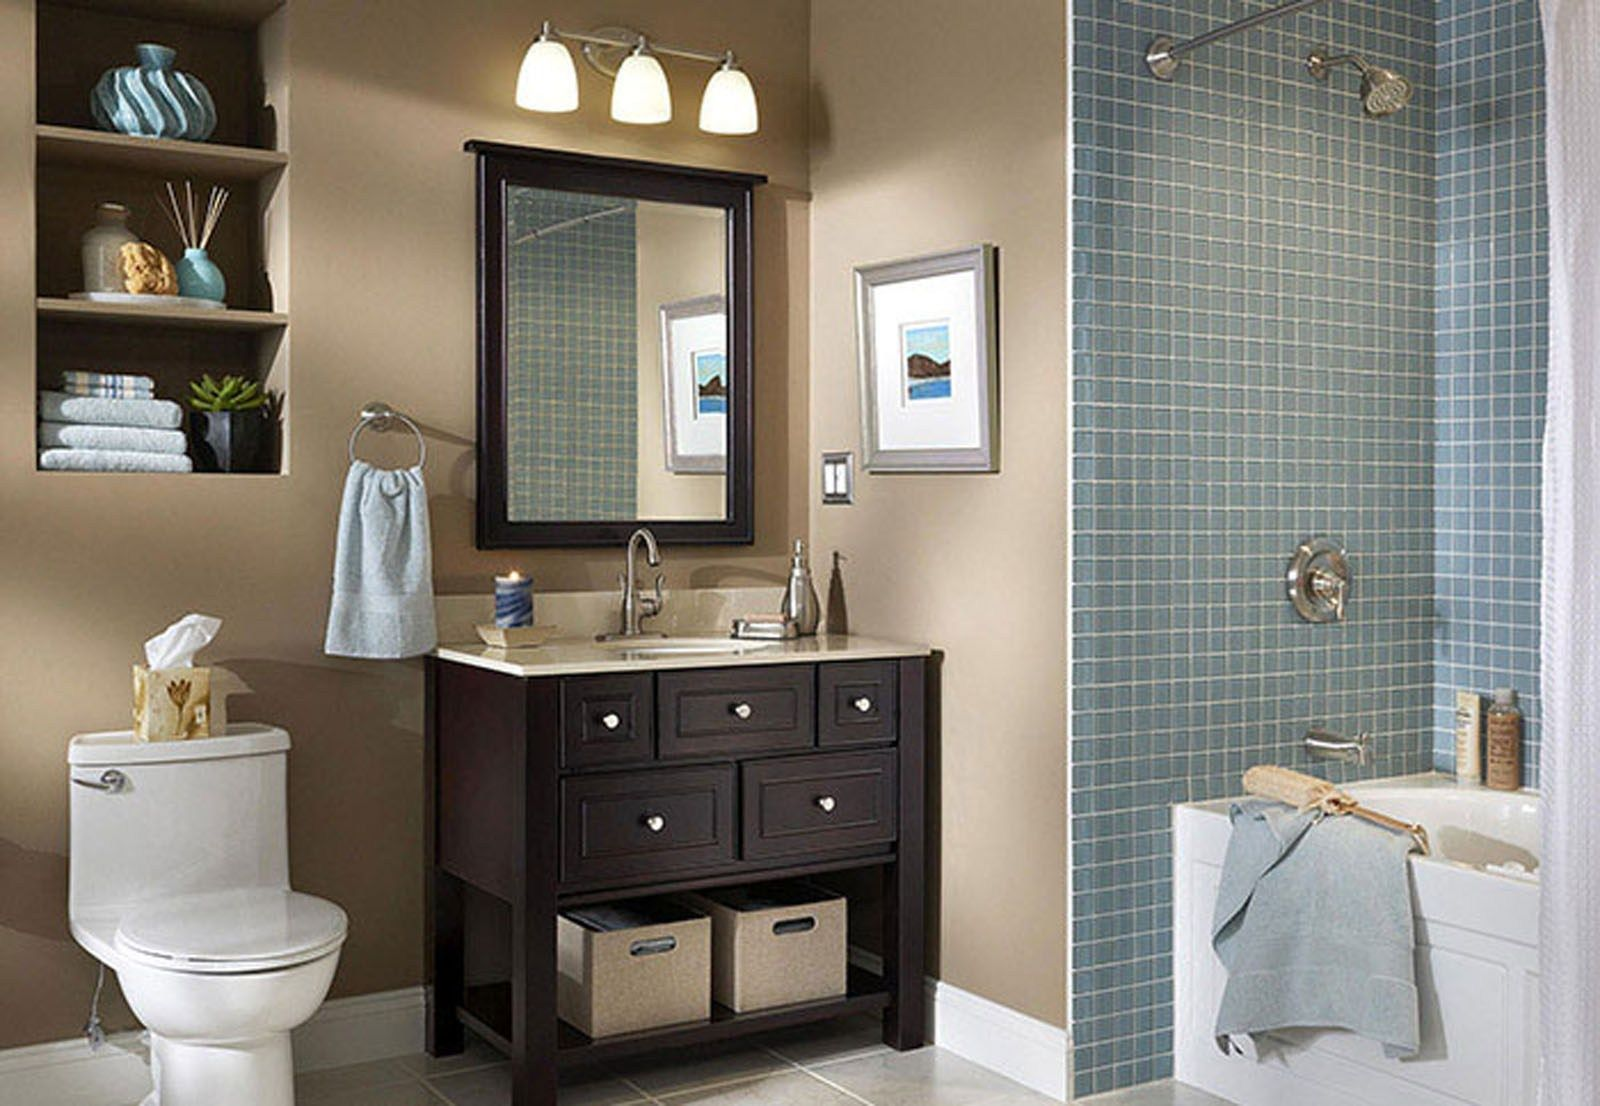 Bathroom Small color ideas pictures pictures photos